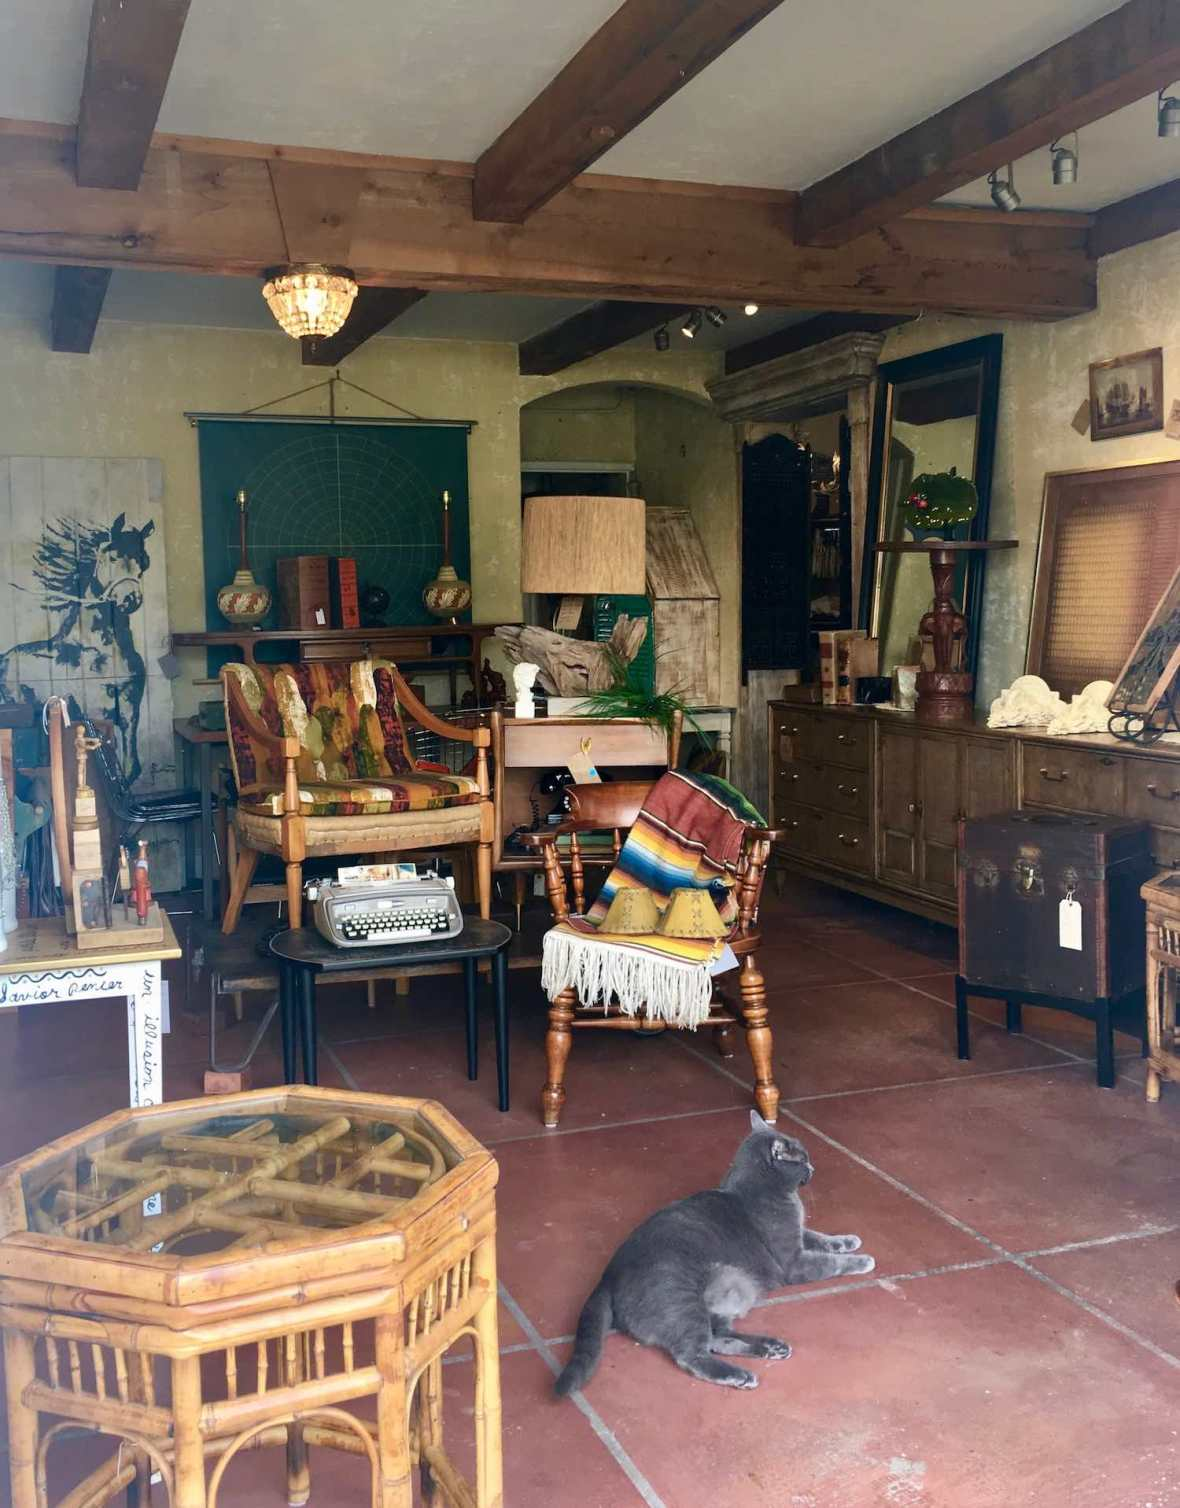 Store kitty and a beautifully curated collection at Provence Art and Antiques in Belleair Florida near St. Petersburg